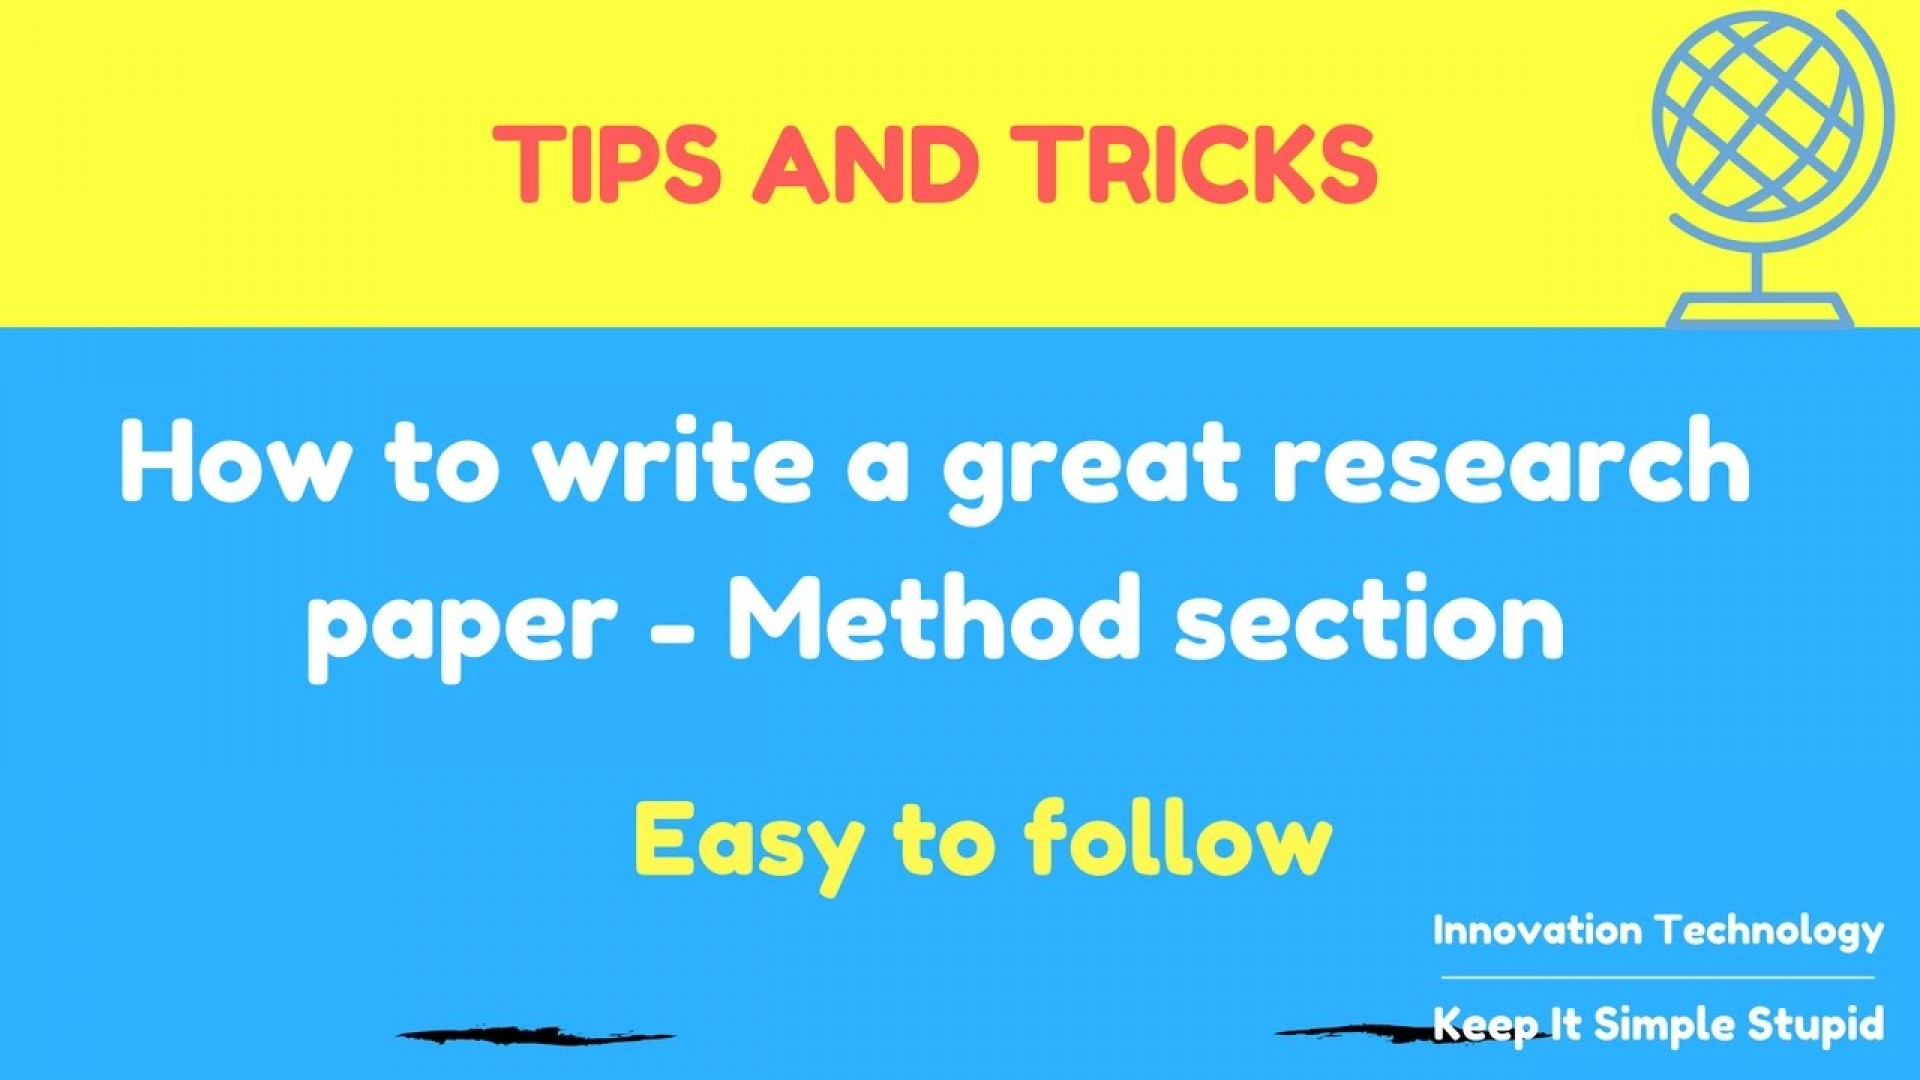 011 Maxresdefault Research Paper Methods Section In Sensational A Results Of Scientific Apa Example Pdf 1920